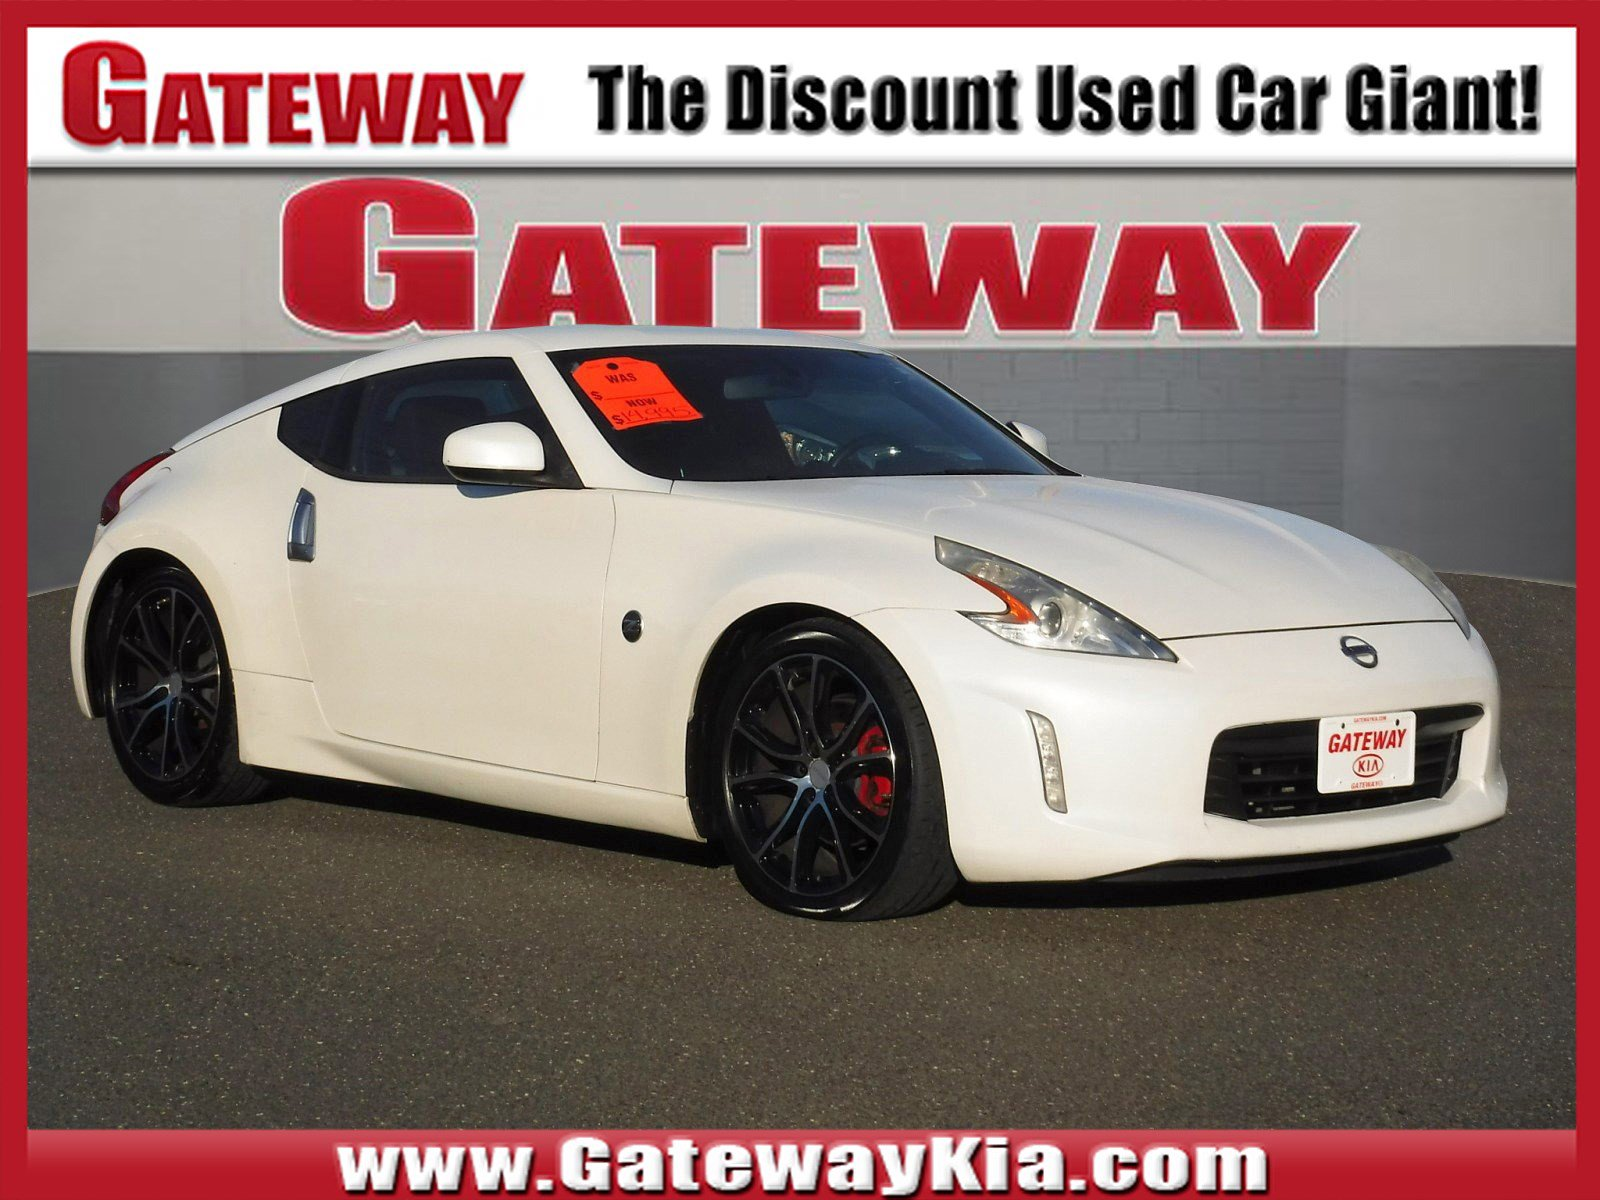 2013 Nissan 370Z Coupe image